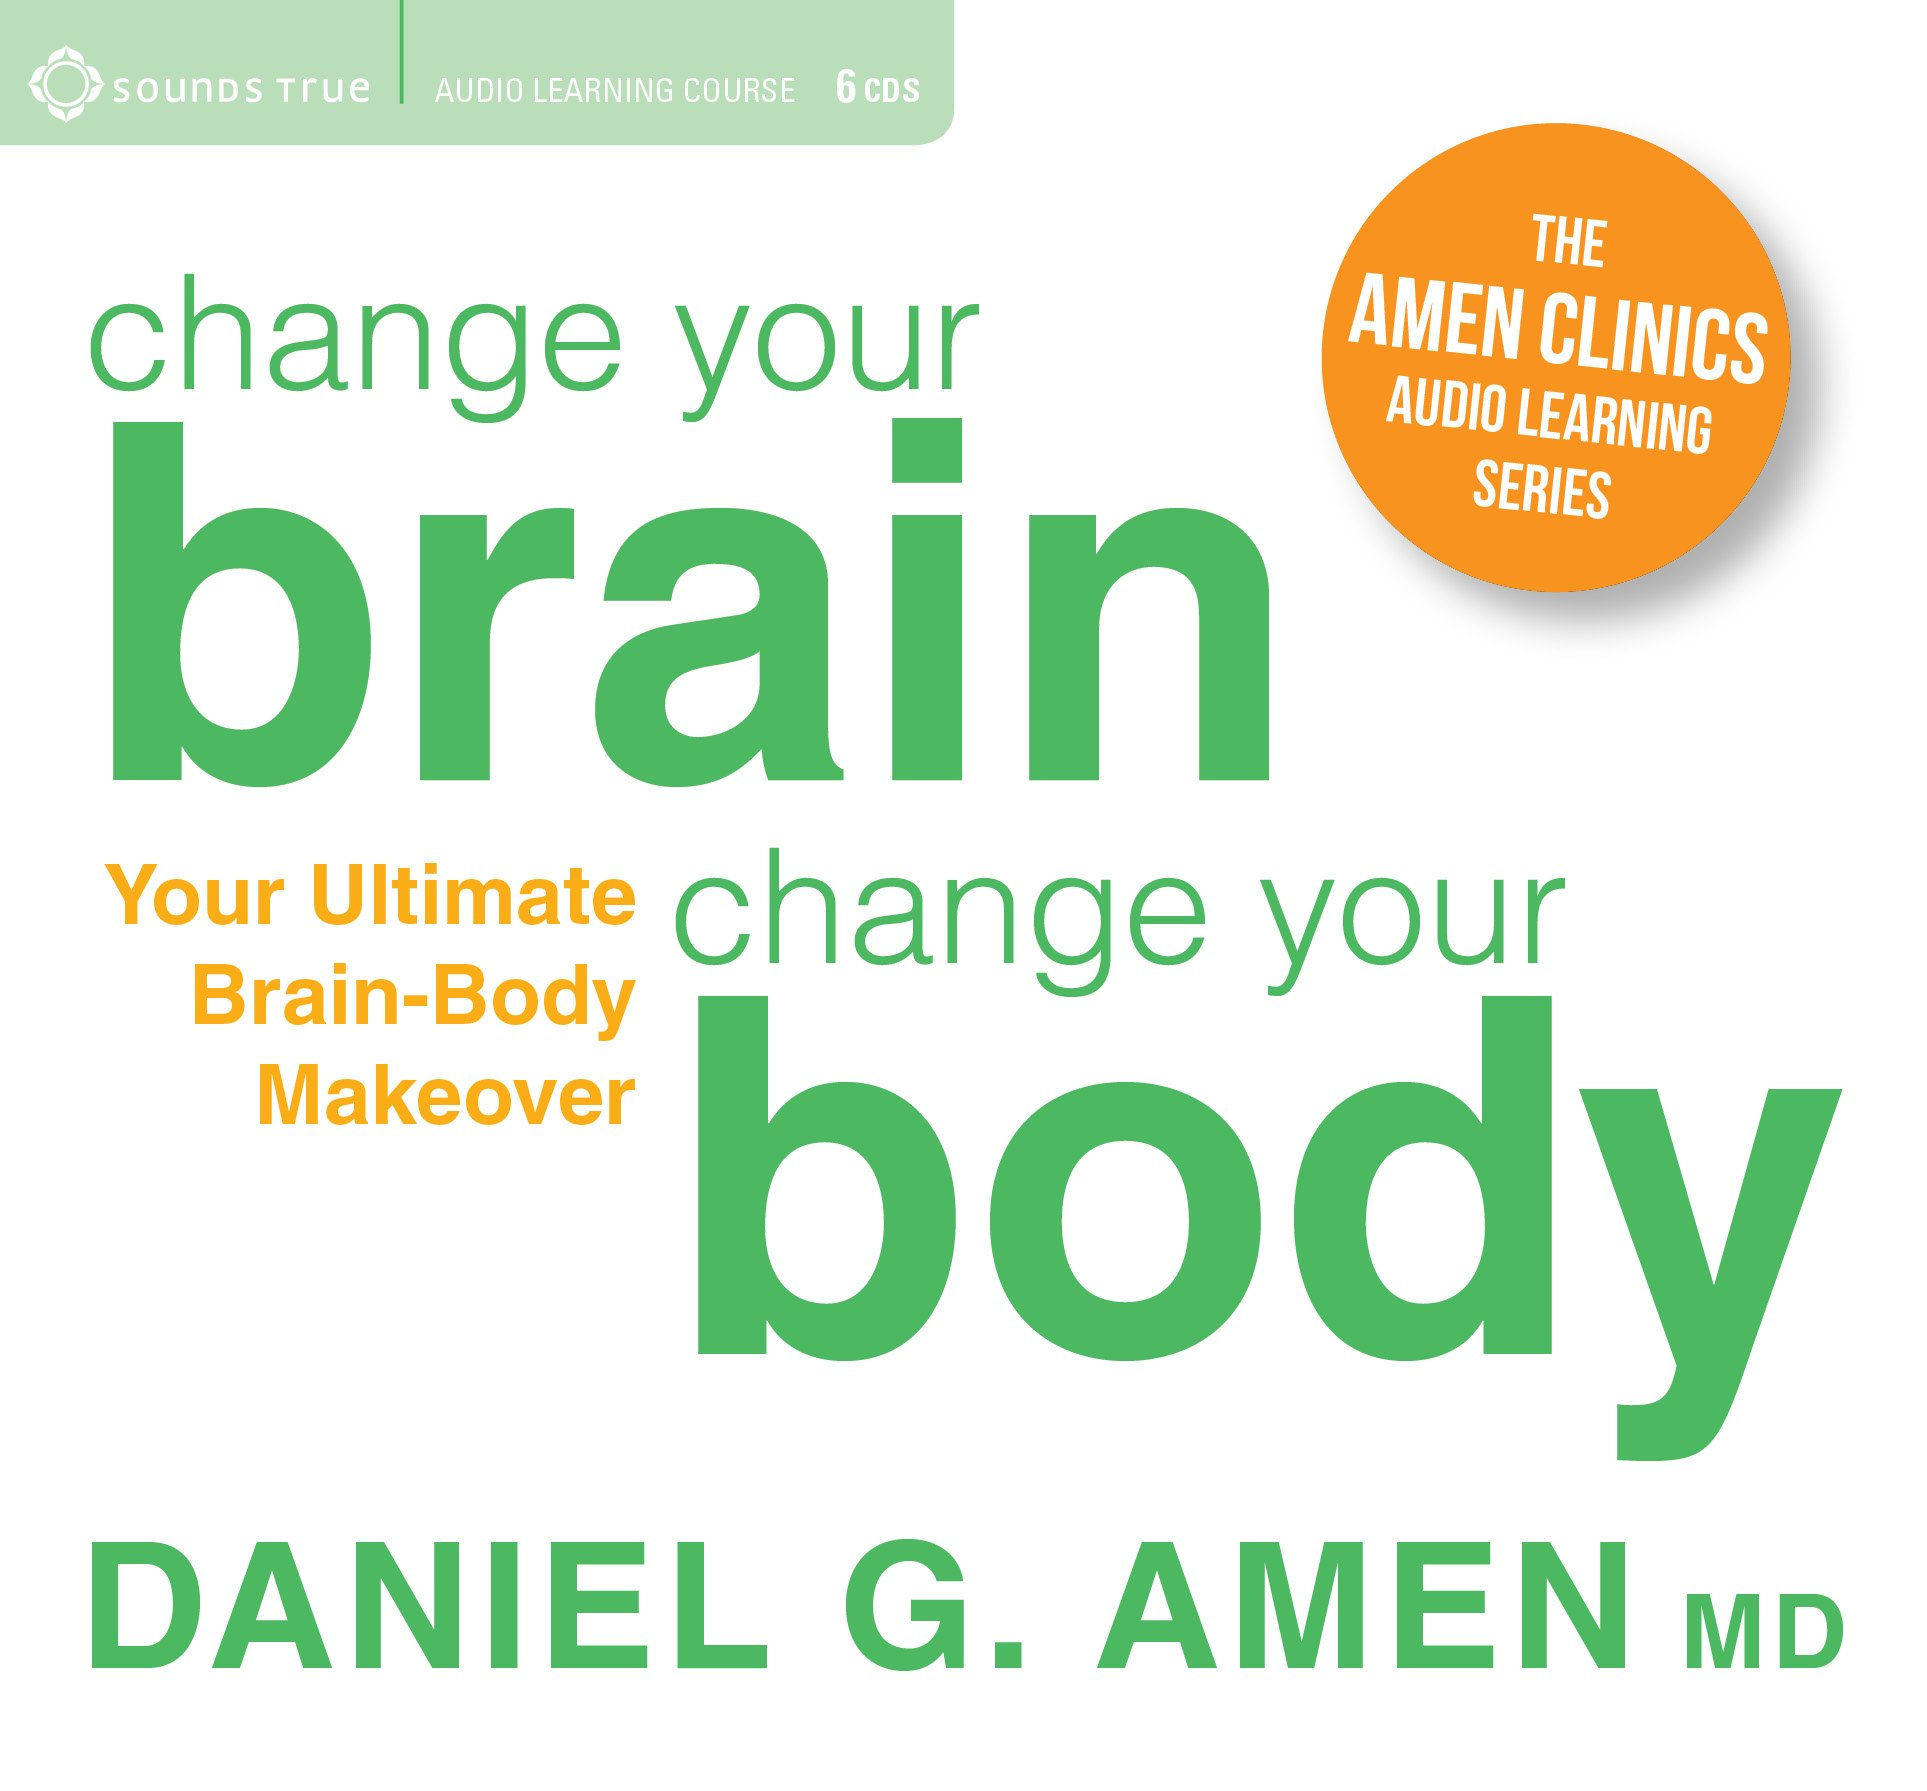 Change Your Brain, Change Your Body: Your Ultimate Brain-Body Makeover (The Amen Clinics Audio Learning)